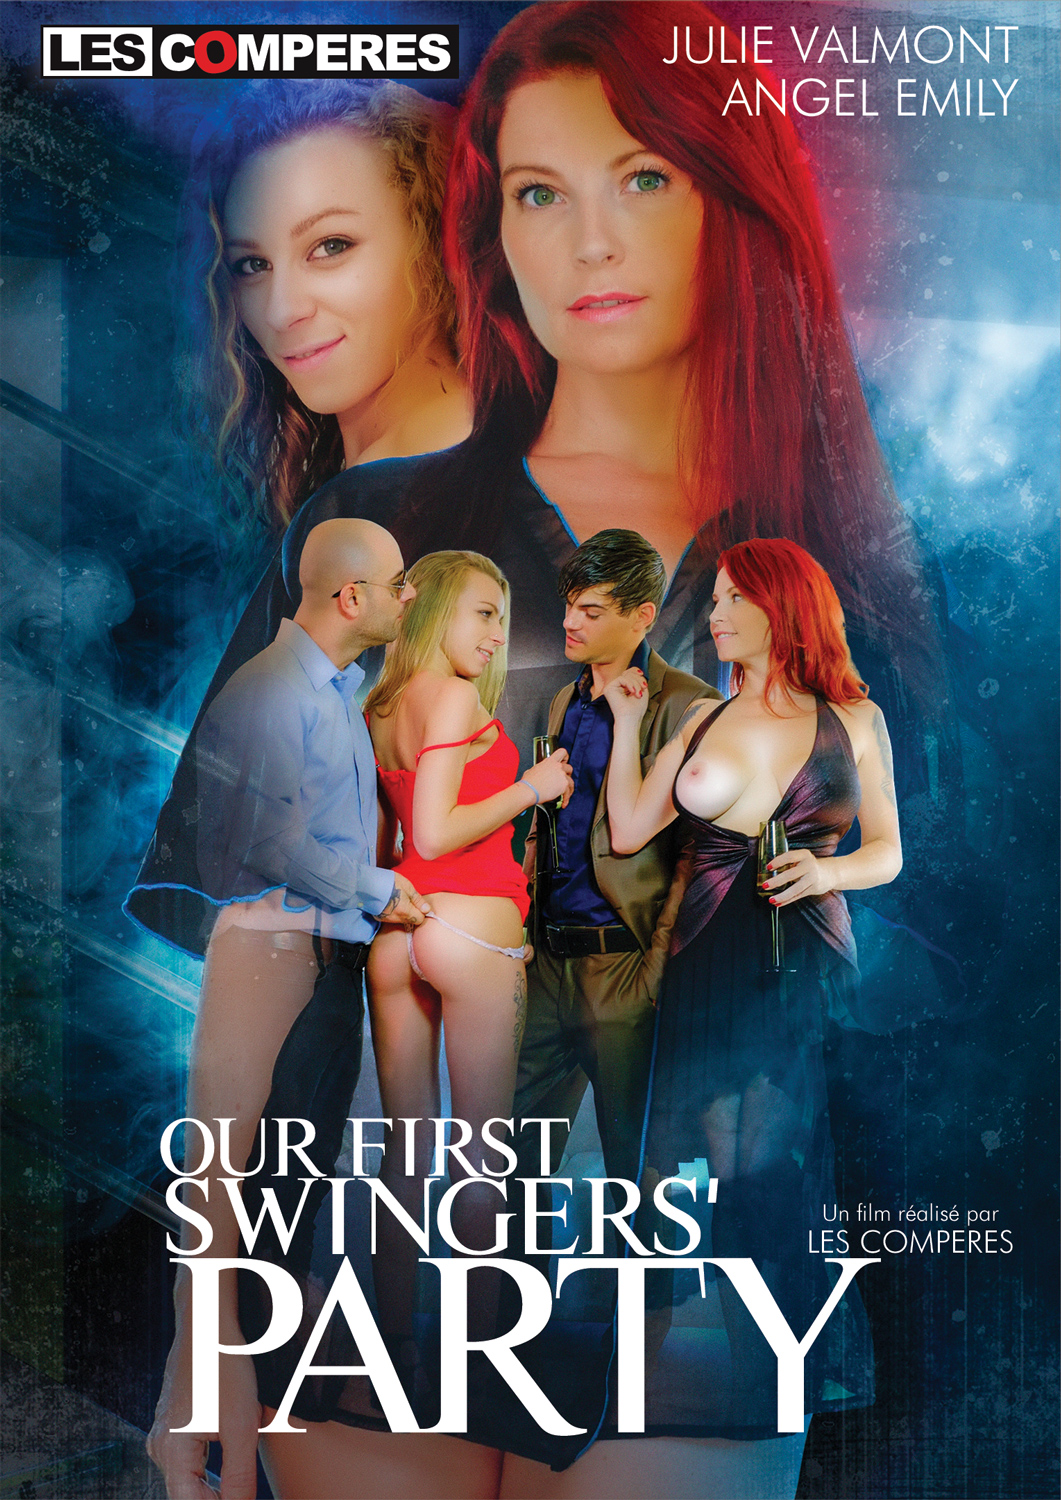 Our first swingers party